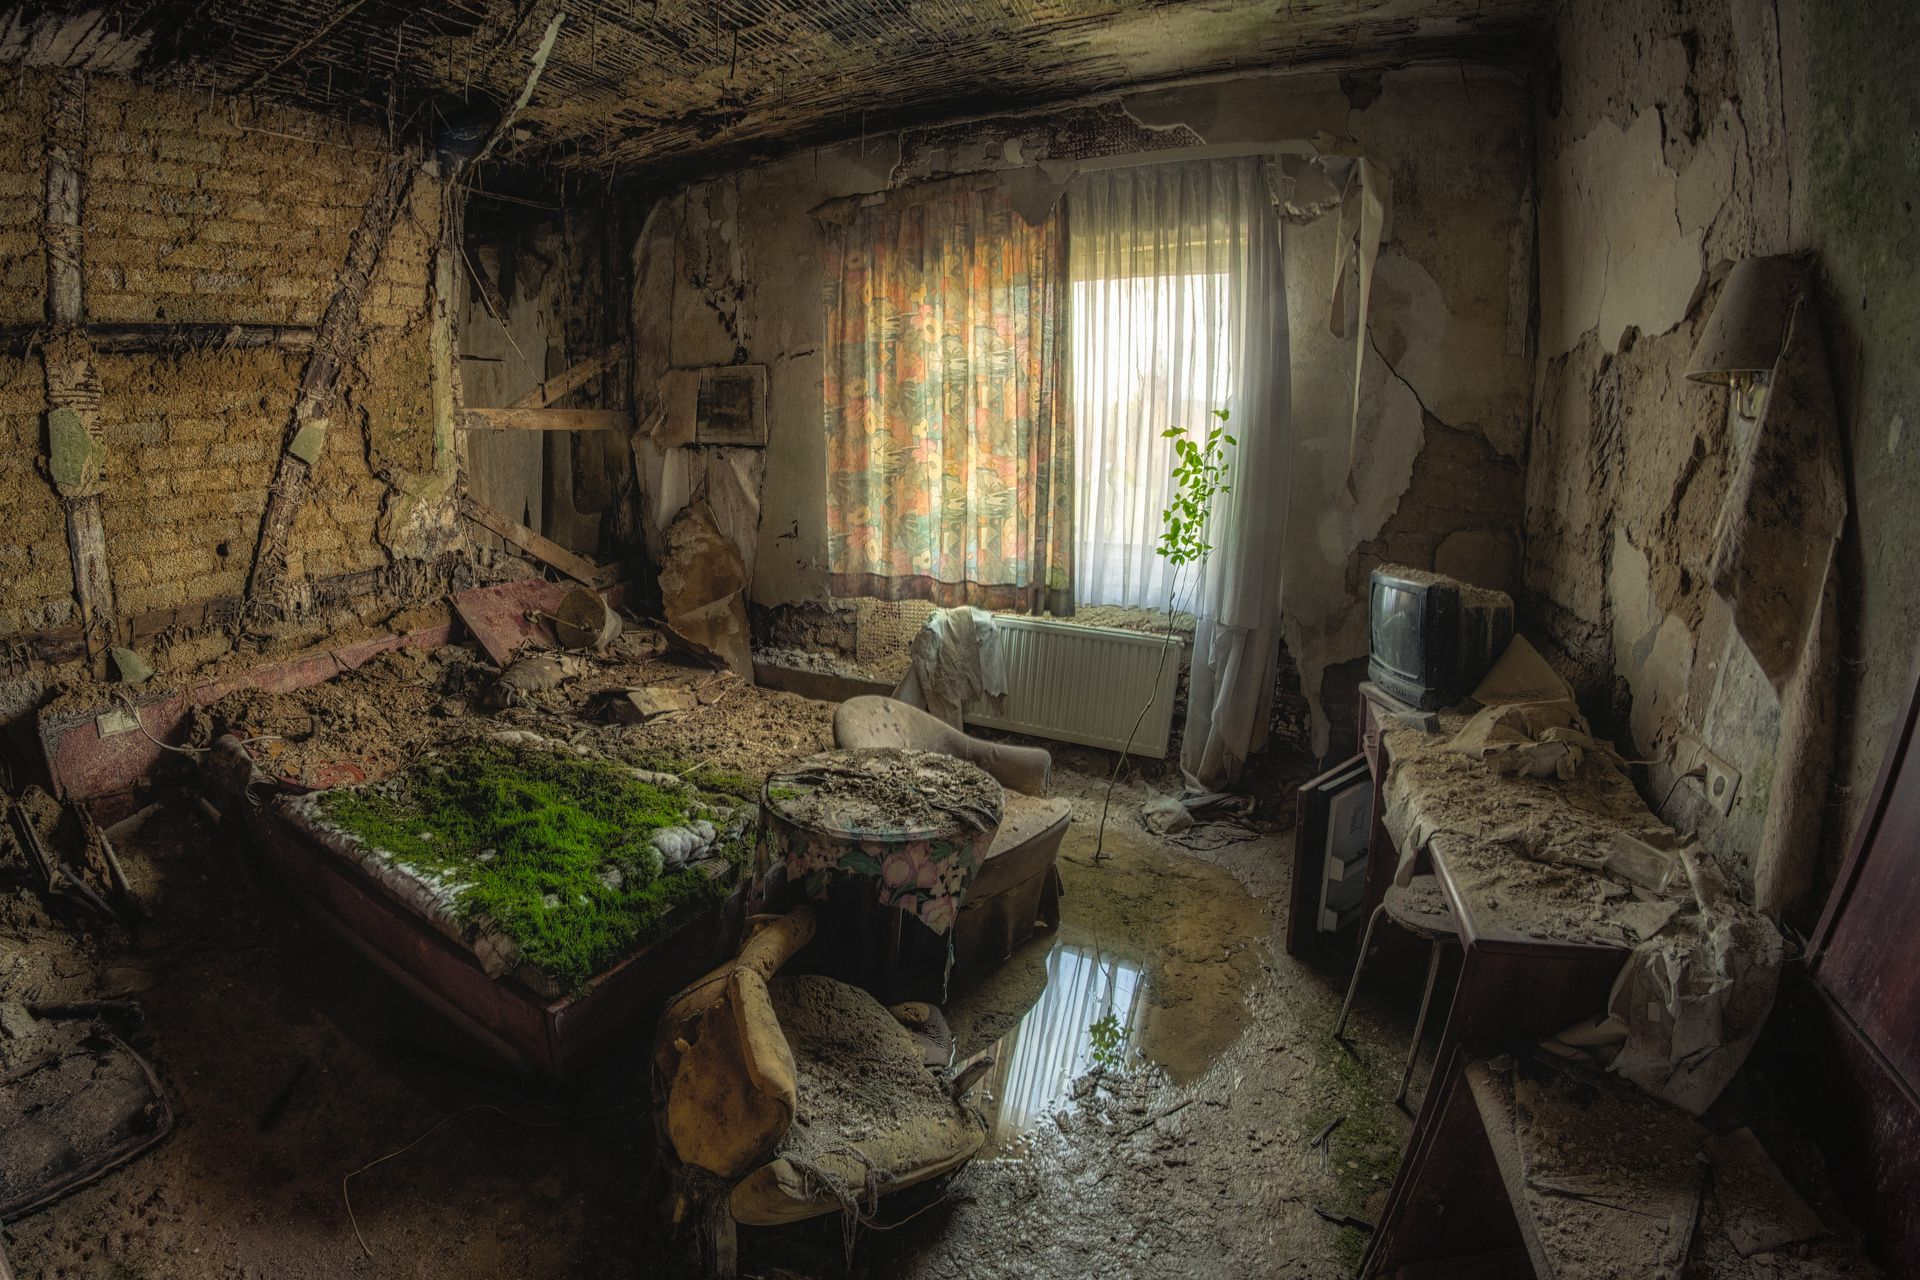 back to nature (re work) - captured in the abandoned Berghotel Deluxe. (2014)